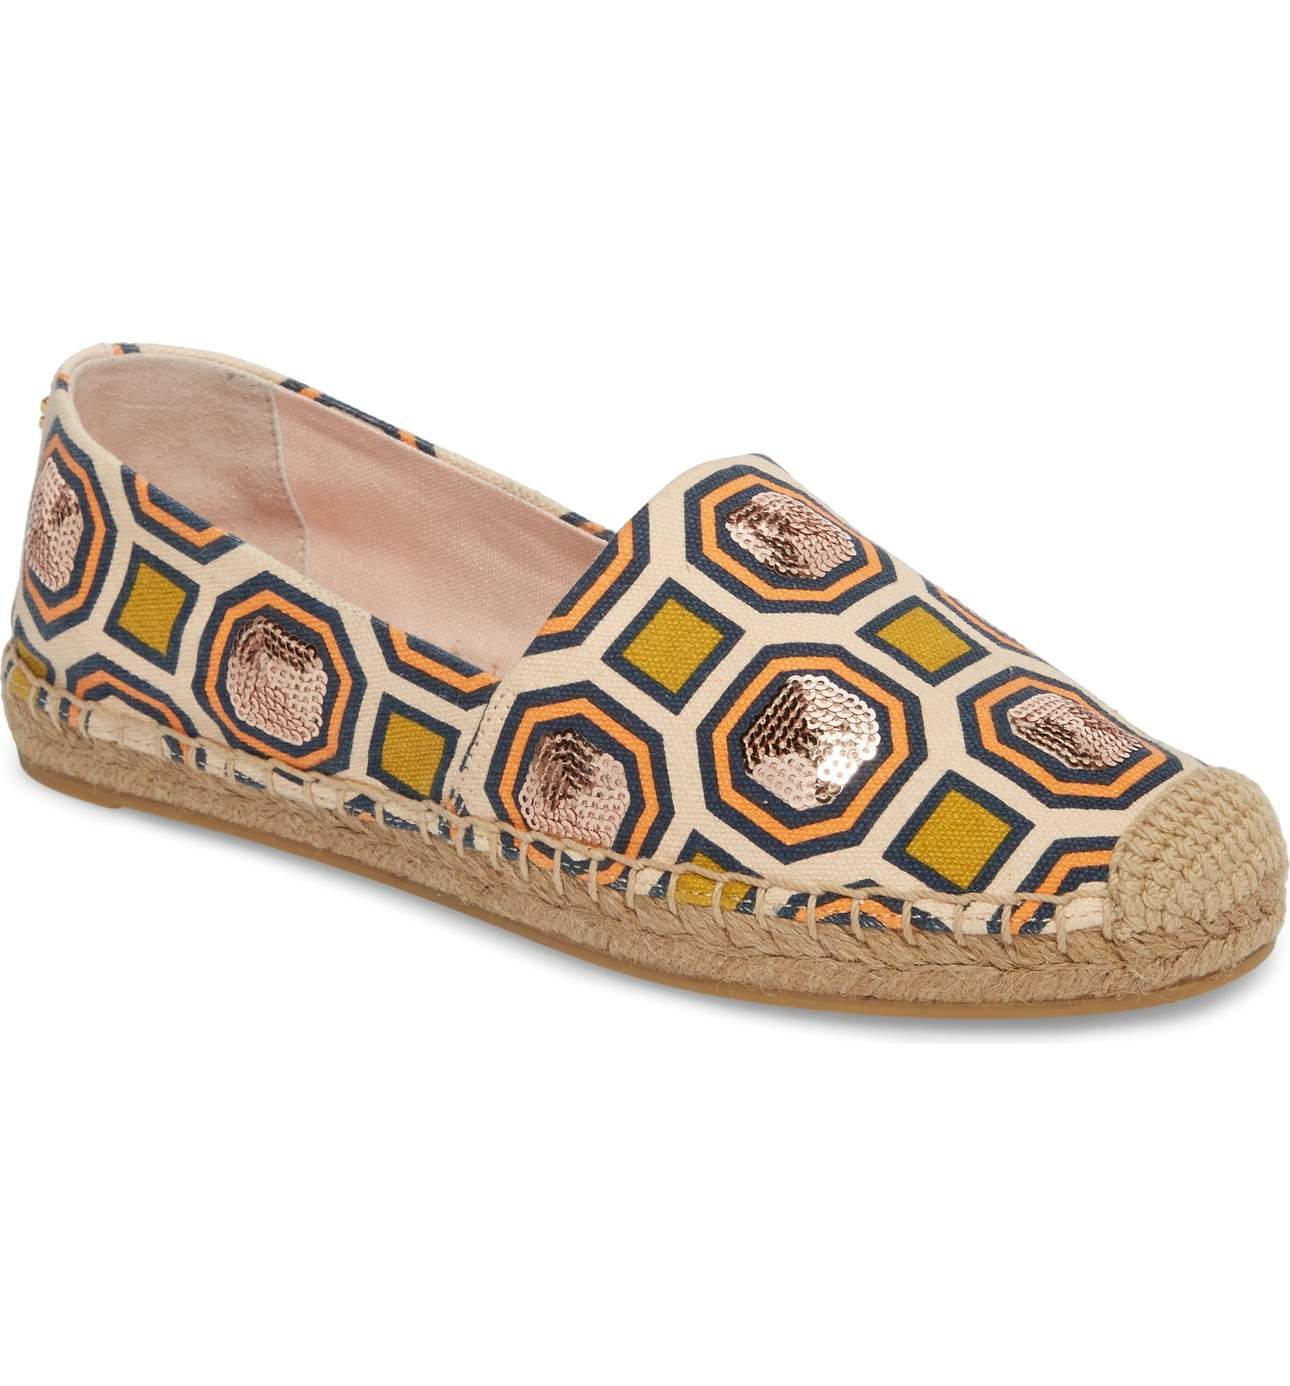 This Cecily Sequin Embellished Espadrille was $198.00 and is{&amp;nbsp;}<p>now: $118.80 Shimmery sequins add even more pop to the chic geo pattern on these Tory Burch espadrilles that go the extra mile.{&amp;nbsp;}</p><p>(Image: Nordstrom)</p>